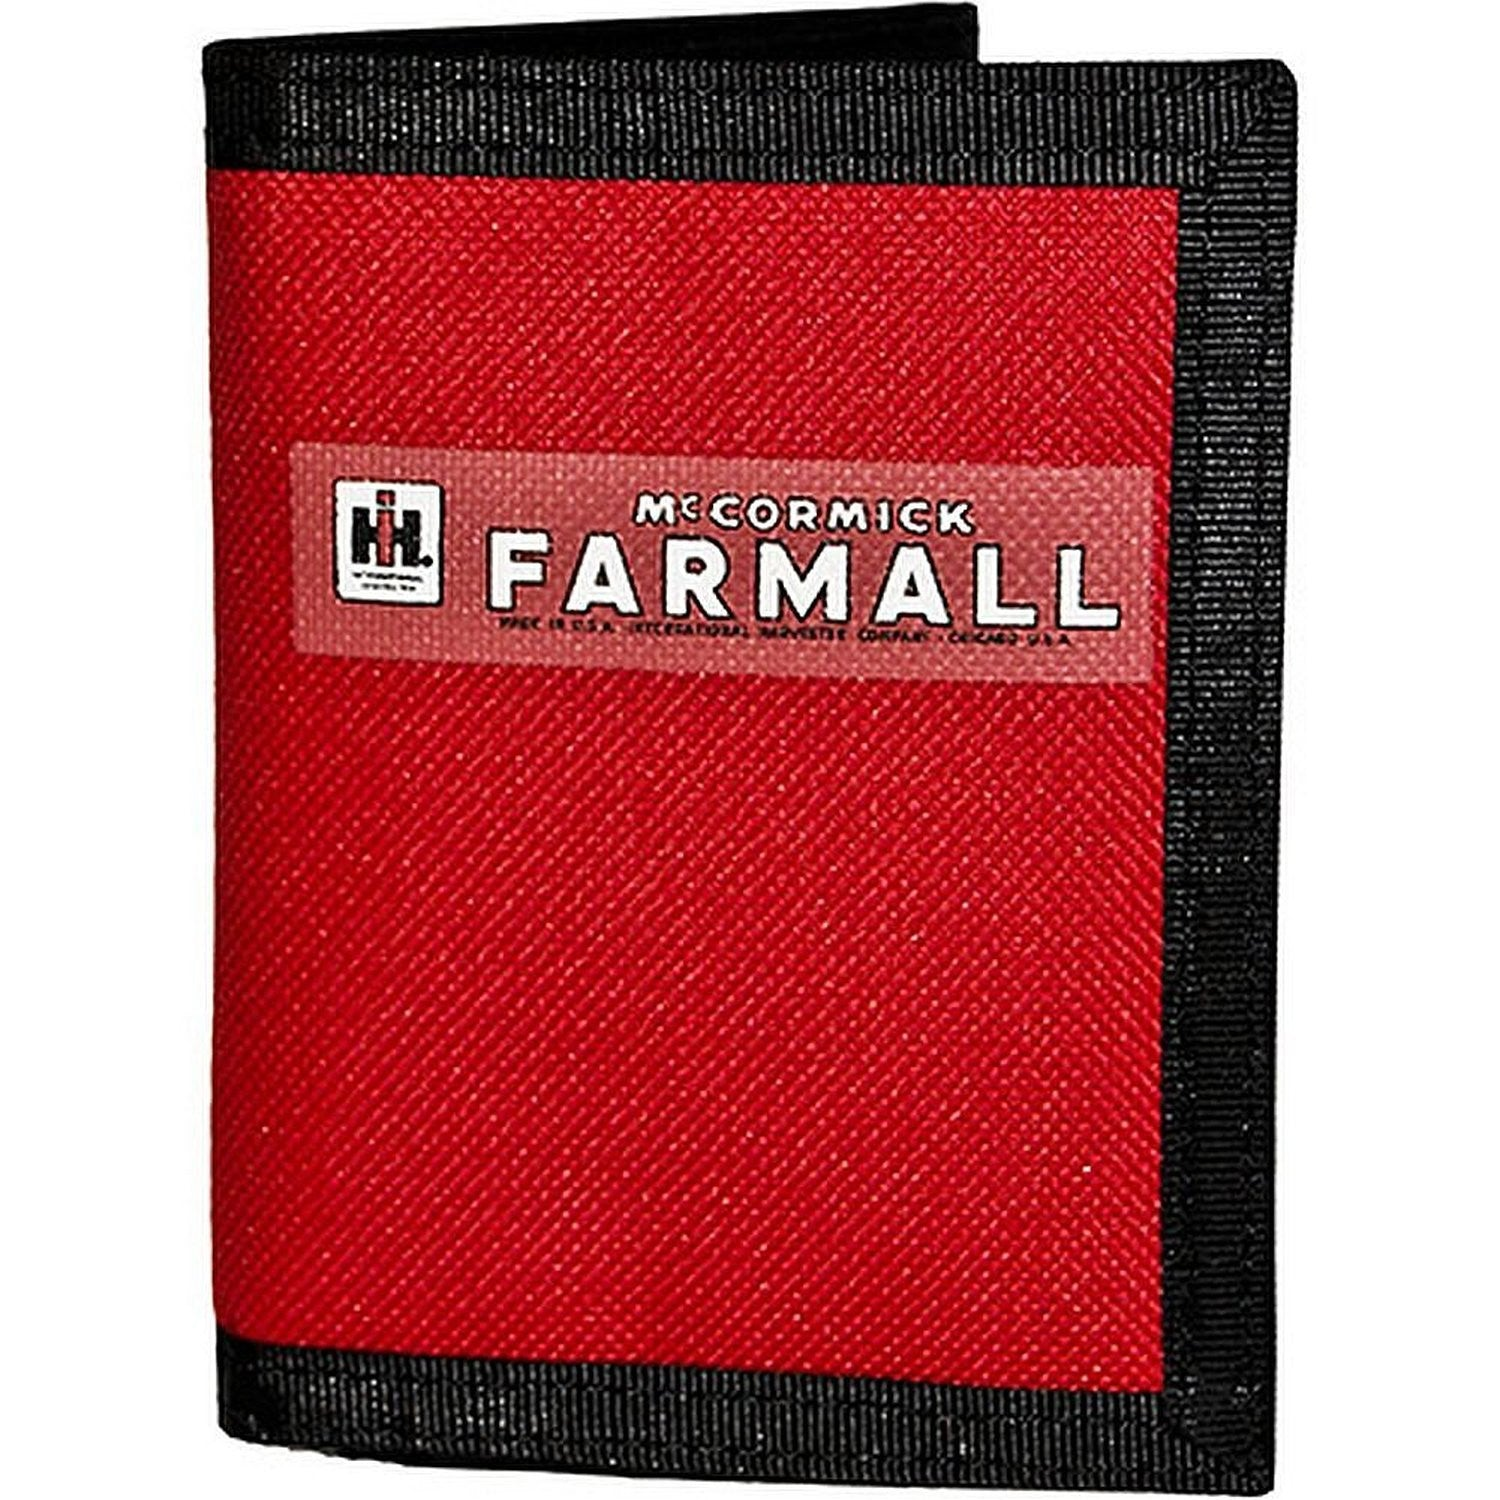 Farmall Red Nylon Trifold Wallet - Back40Trading2